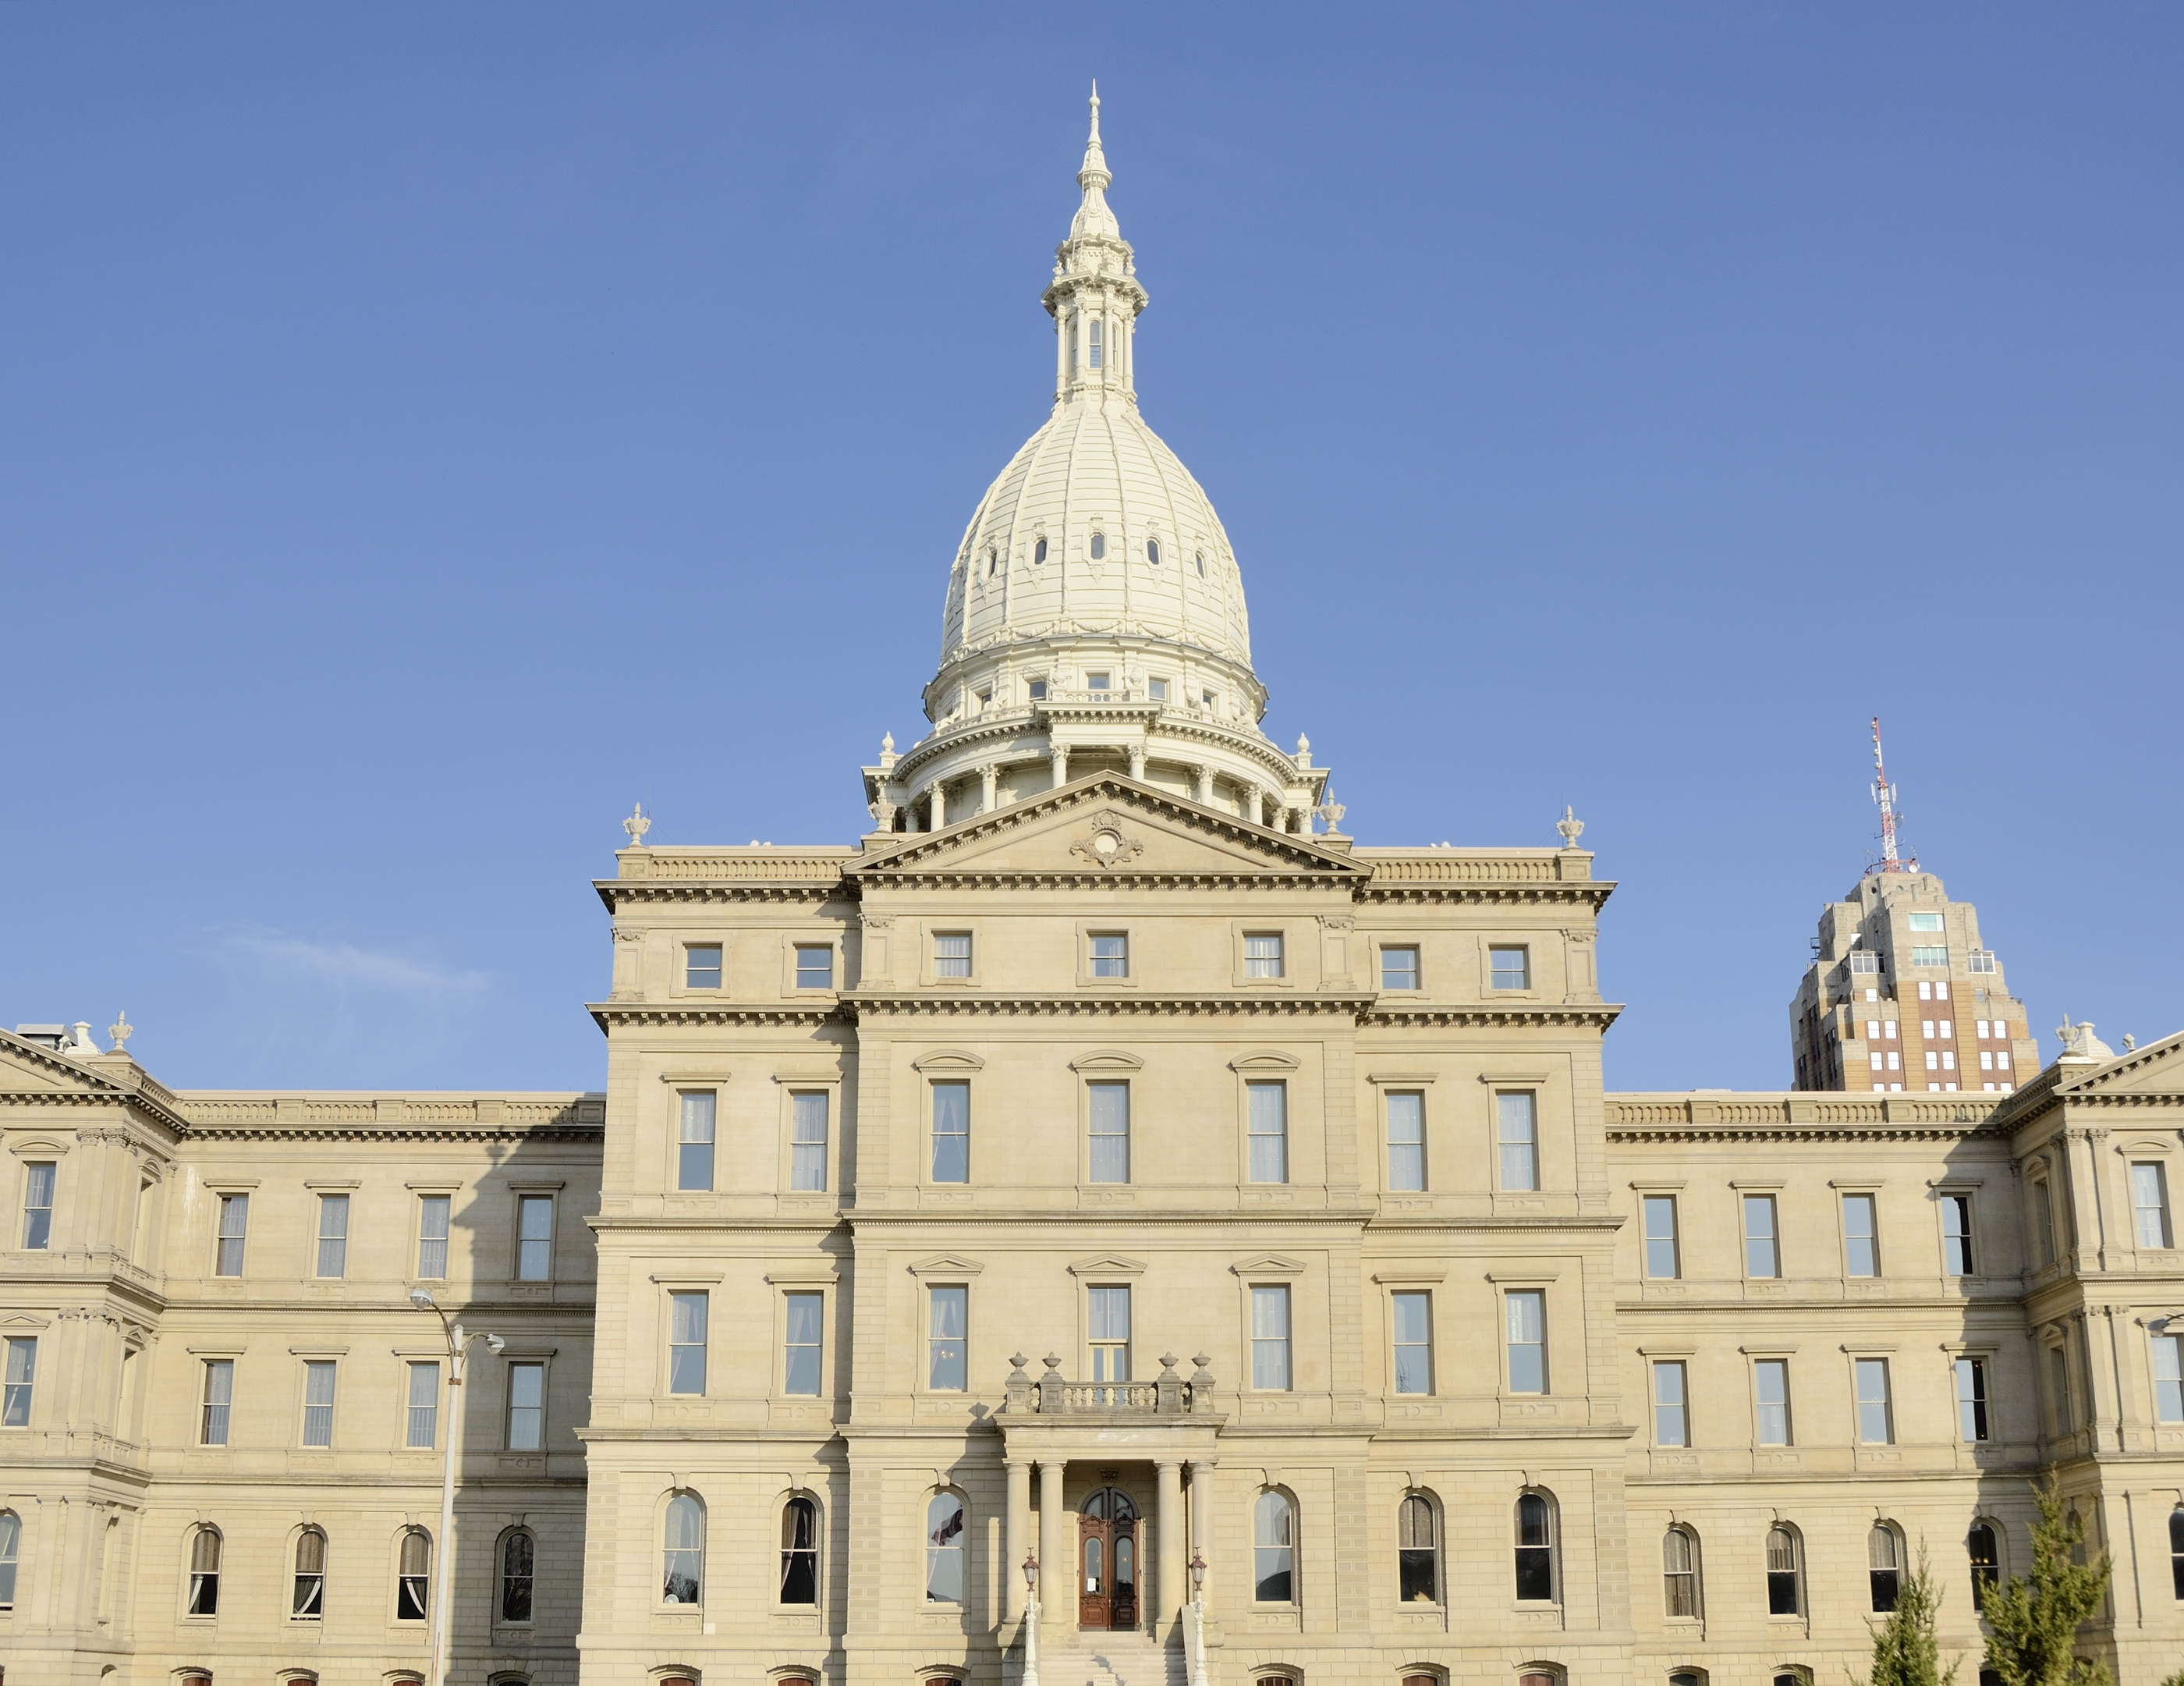 The beautiful dome of the Capitol Building in downtown Lansing, the capital of Michigan.